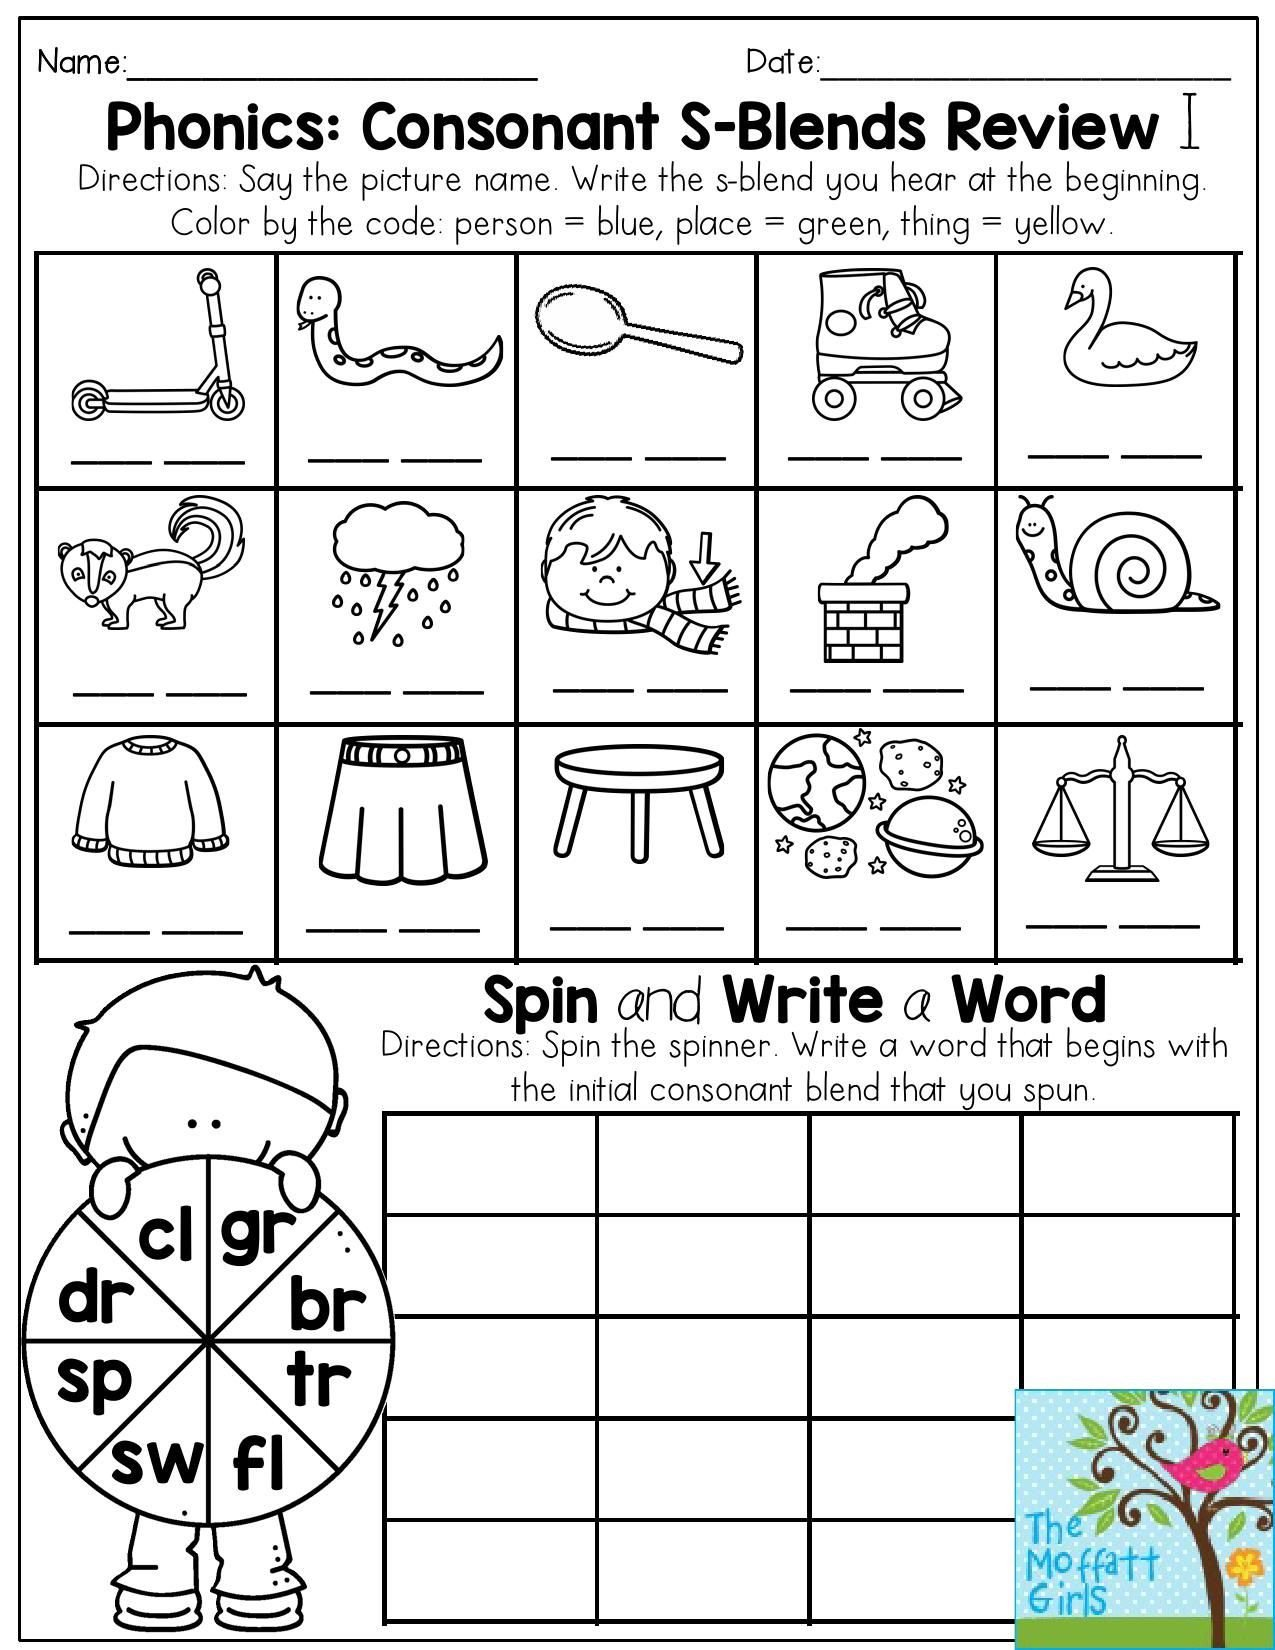 S sound Worksheet Phonics Consonant S Blends Review Write the S Blend that